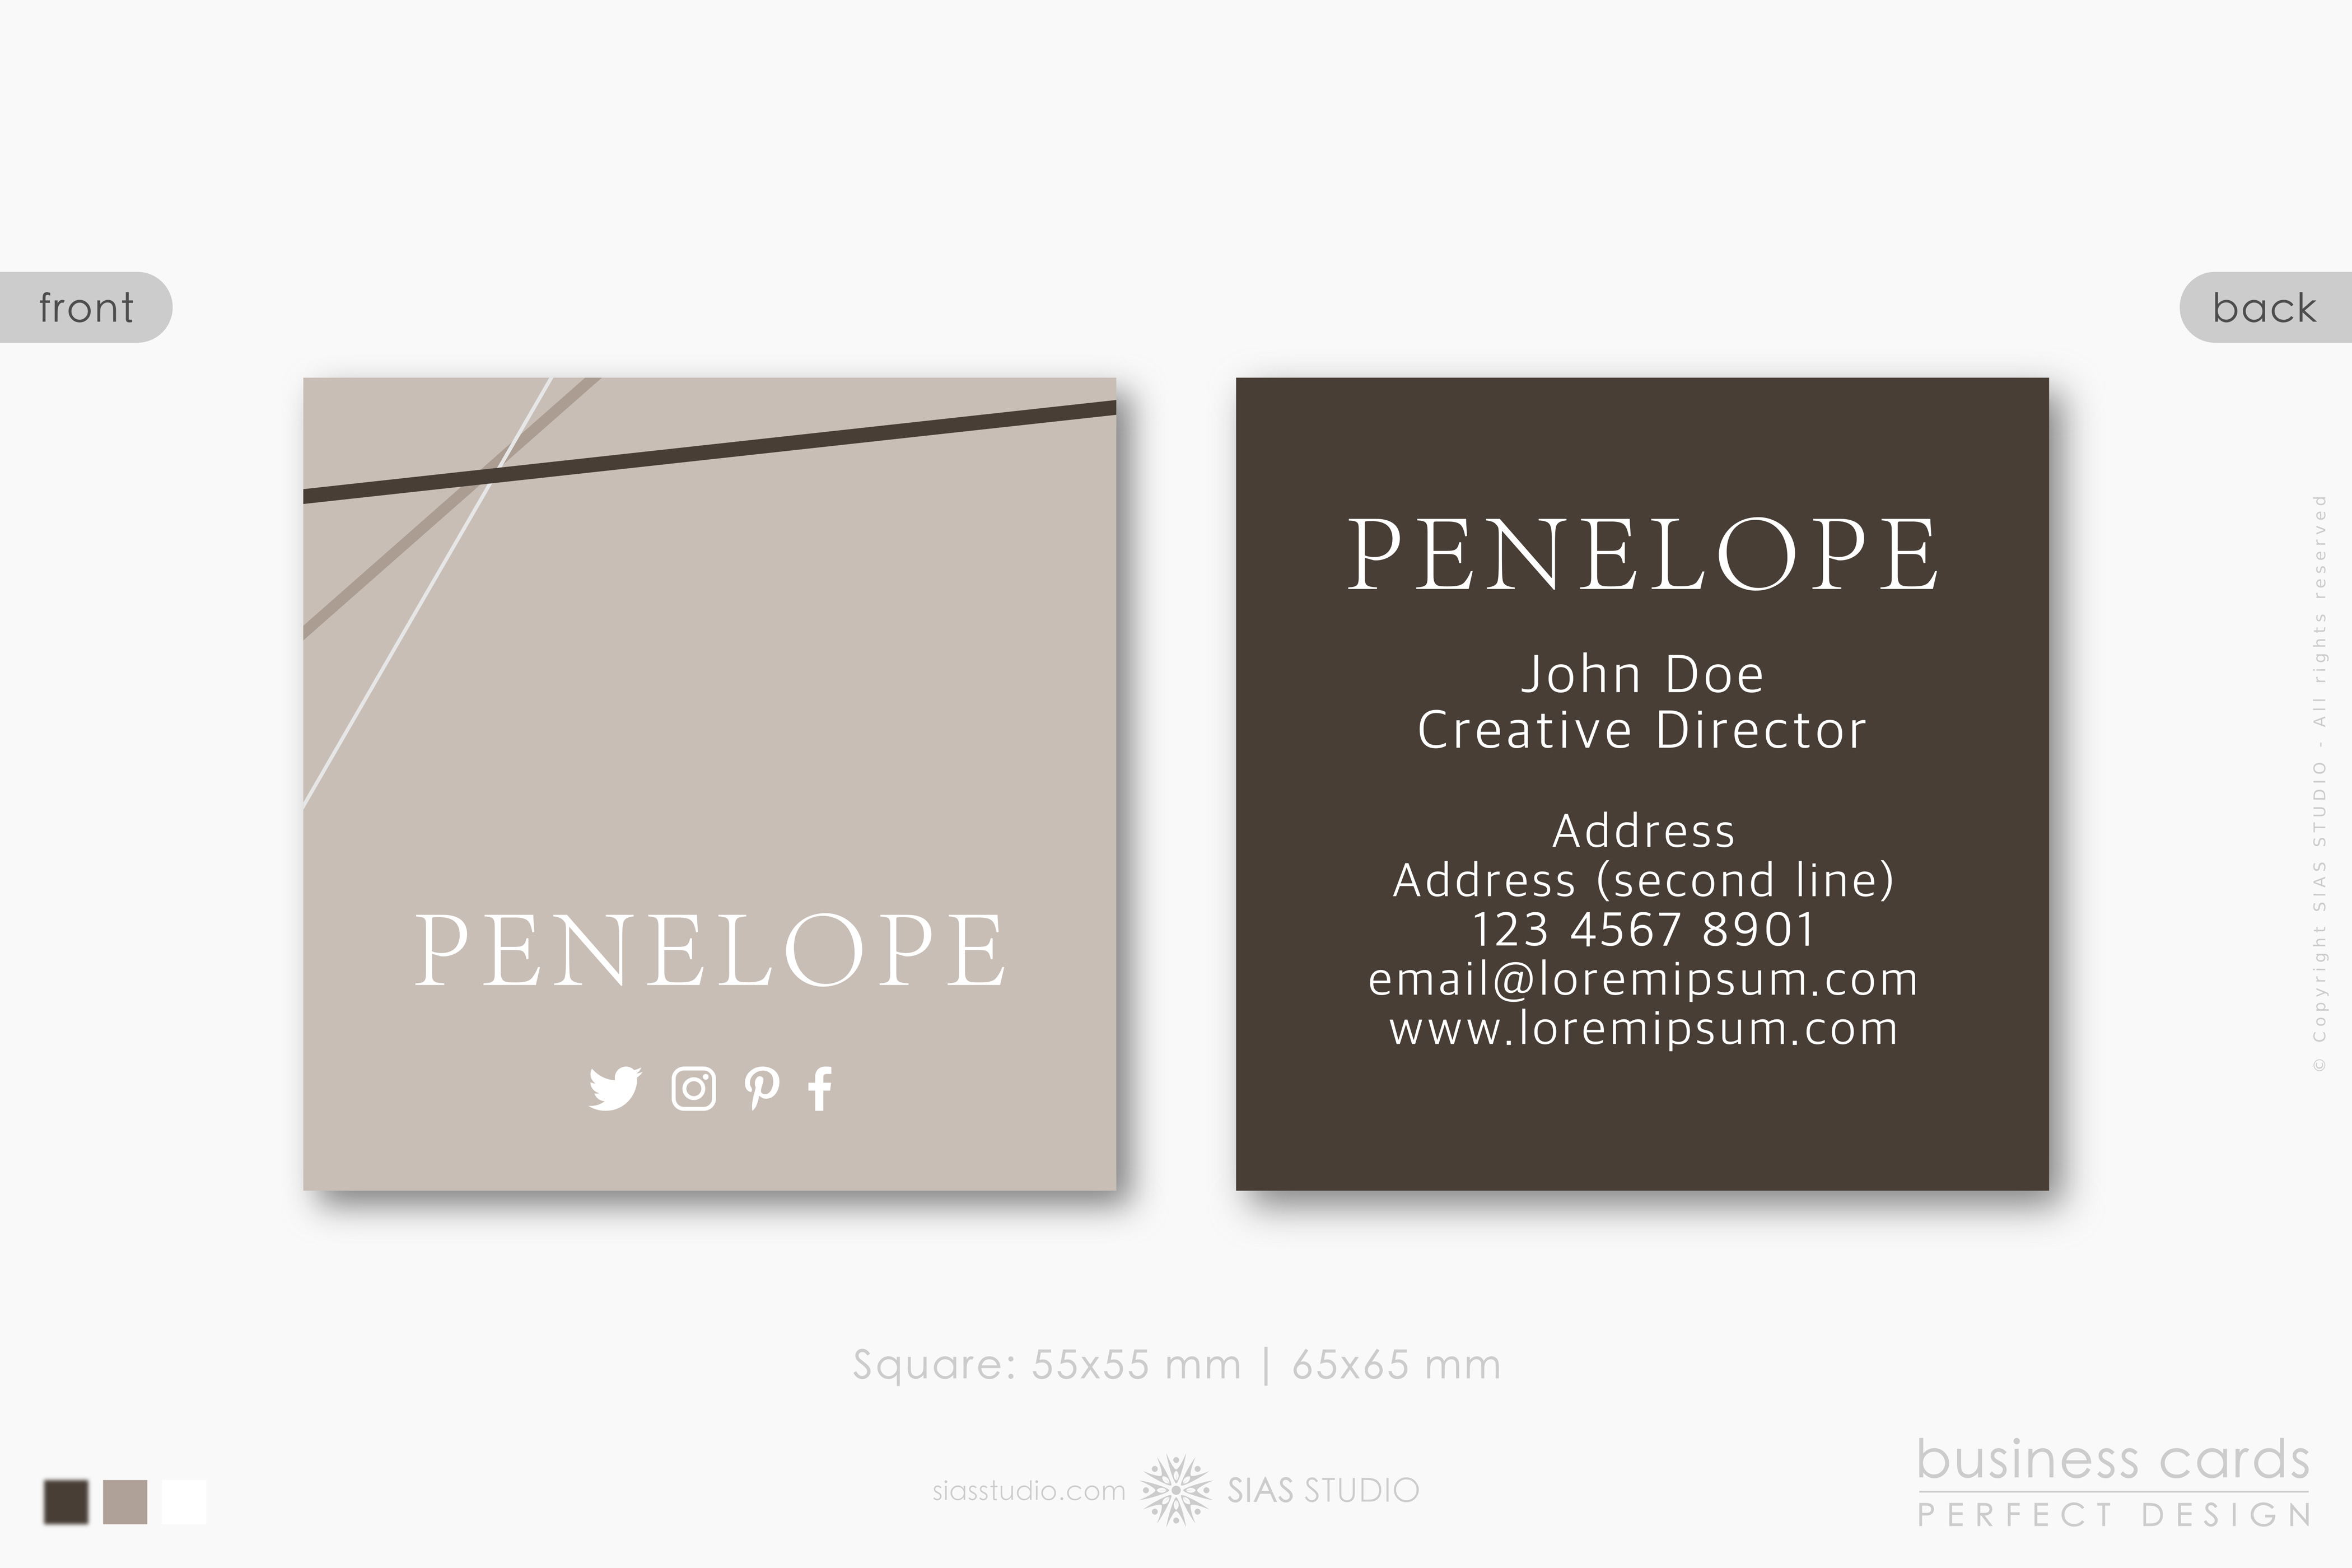 Business card template penelope design with elegant lines sias business card template cheaphphosting Image collections